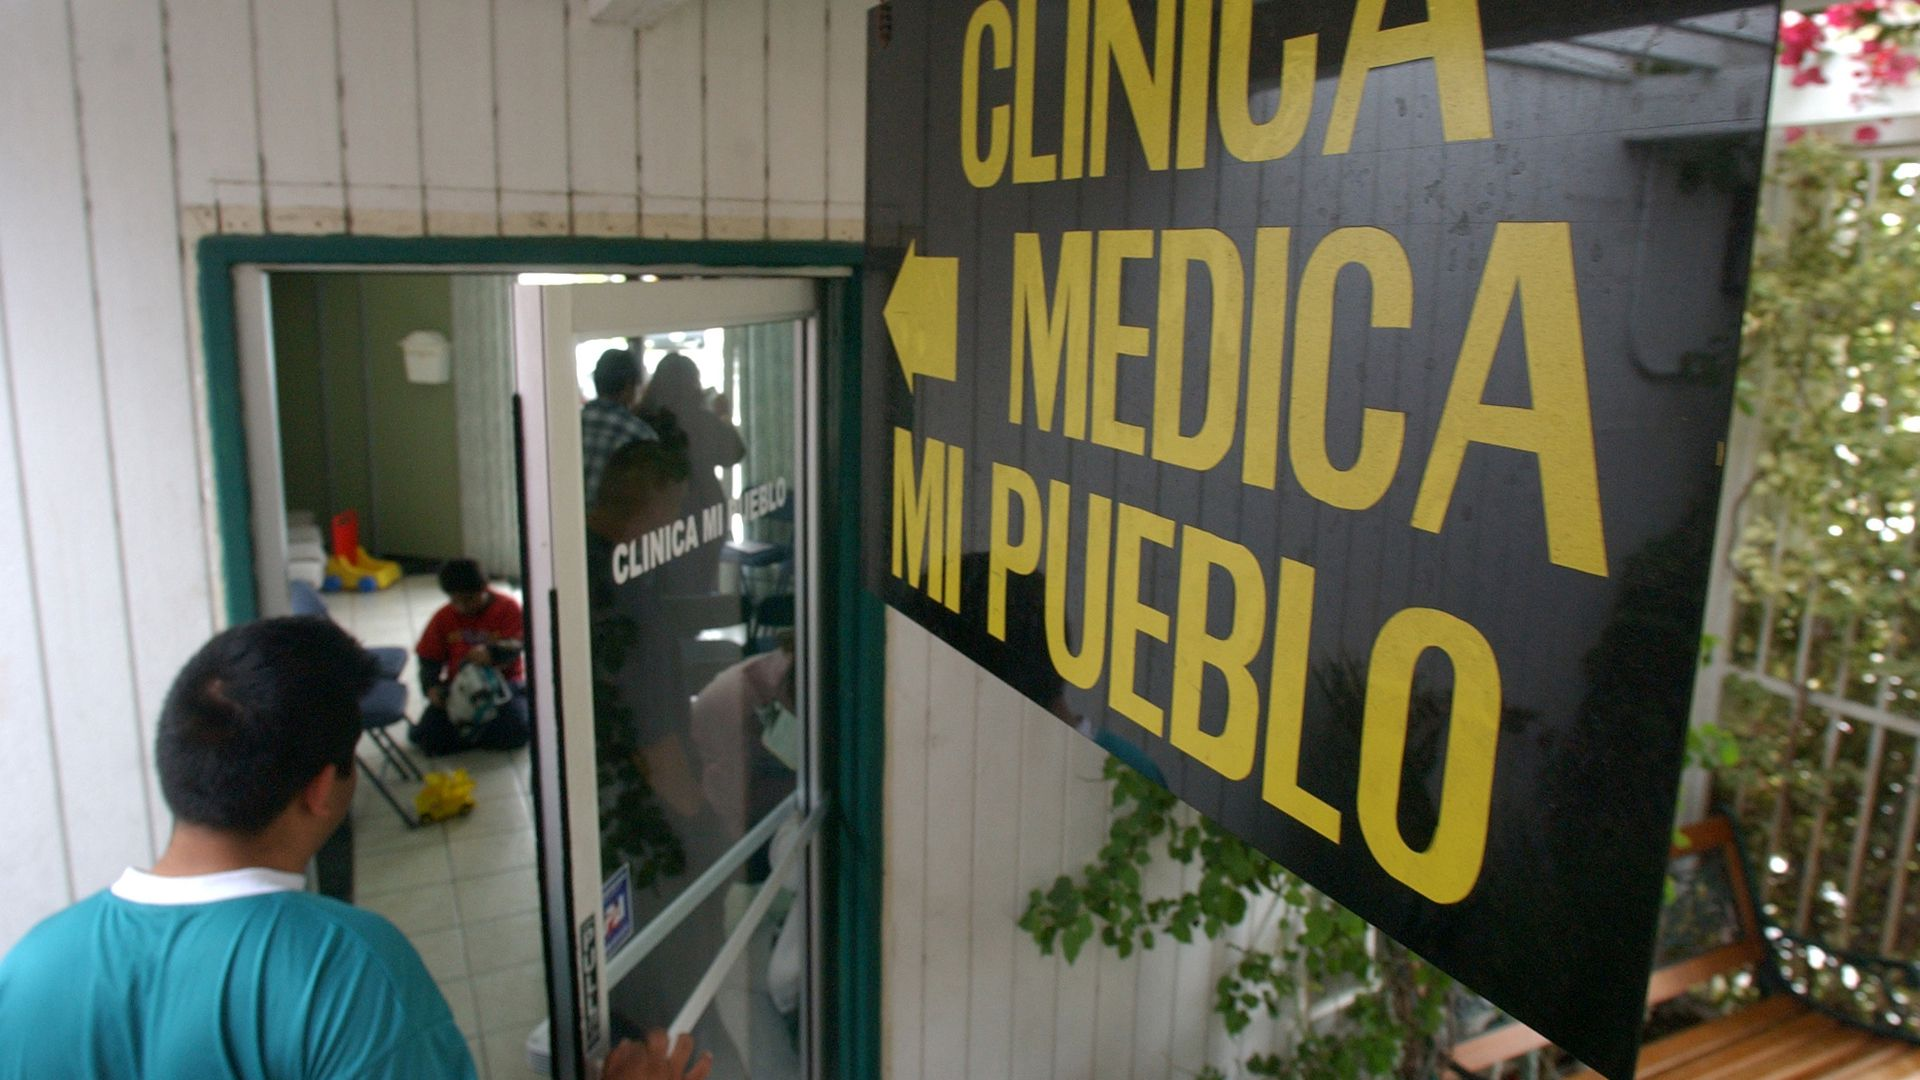 Mi Pueblo clinic is just one of two dozen or so facilities in Orange County that vie for customers among the large, often uninsured immigrant population in Orange County.